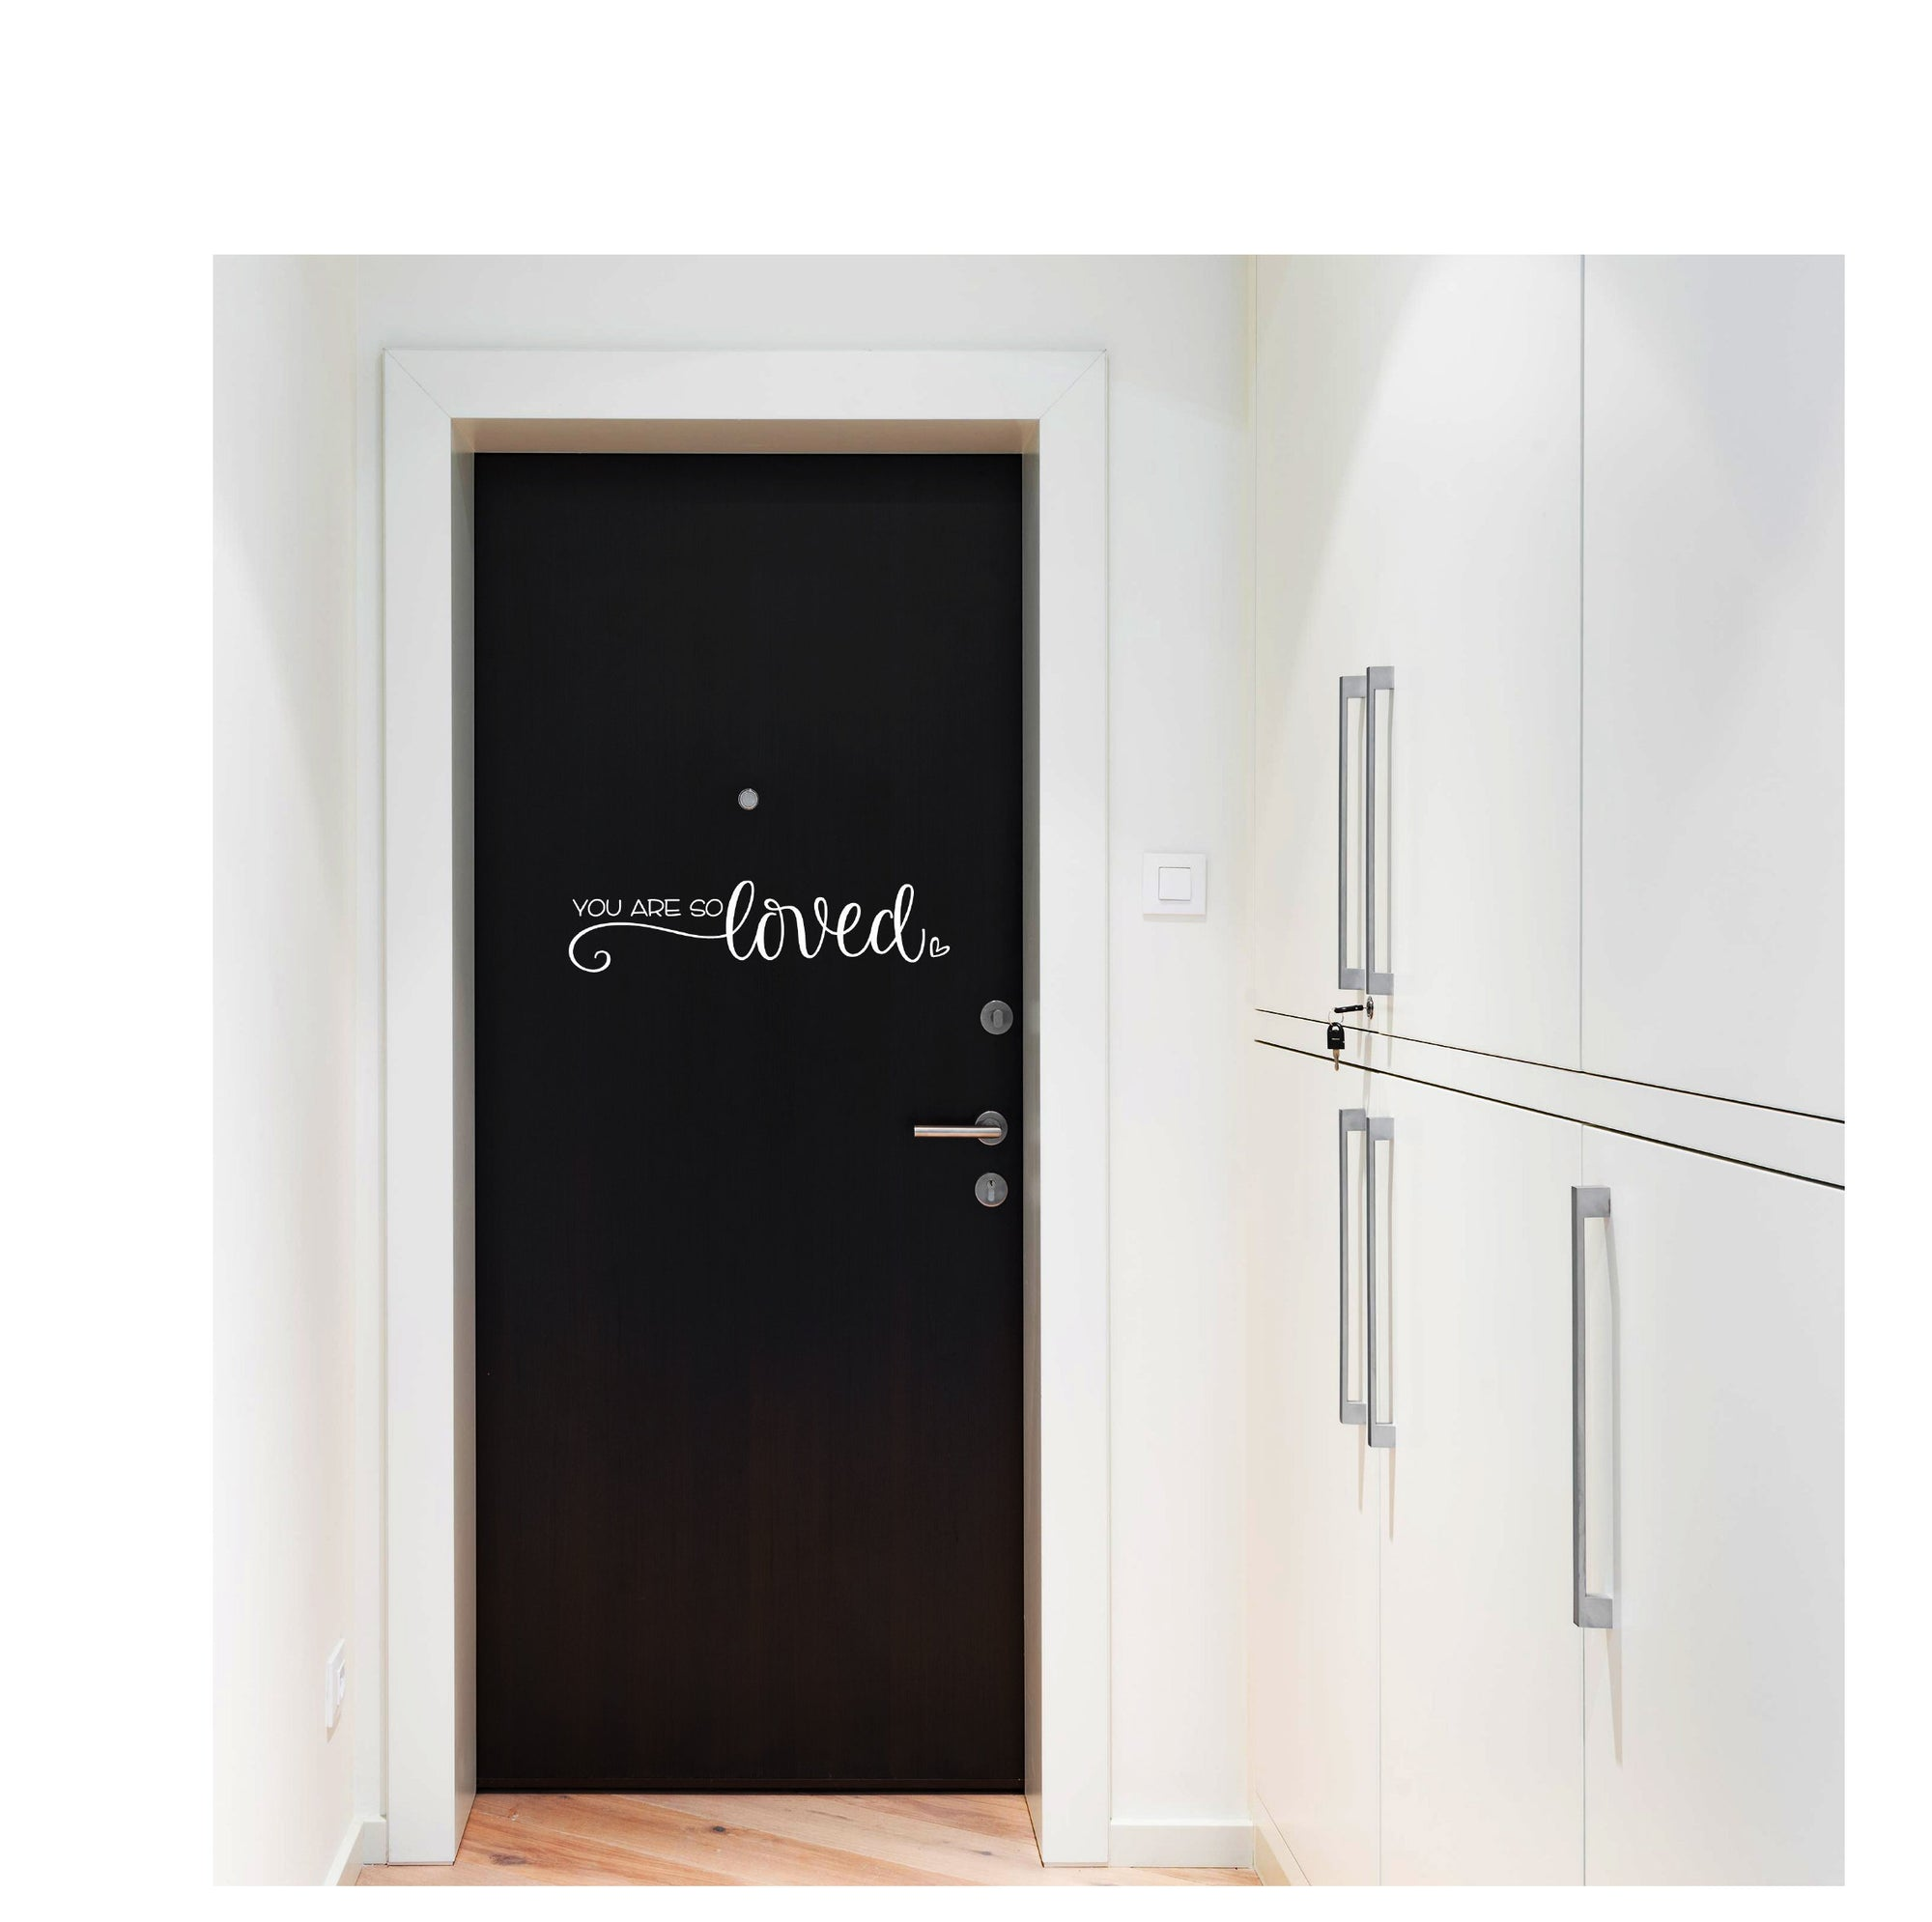 You Are So Loved Door Decal | Entryway Decor | Wall Decal